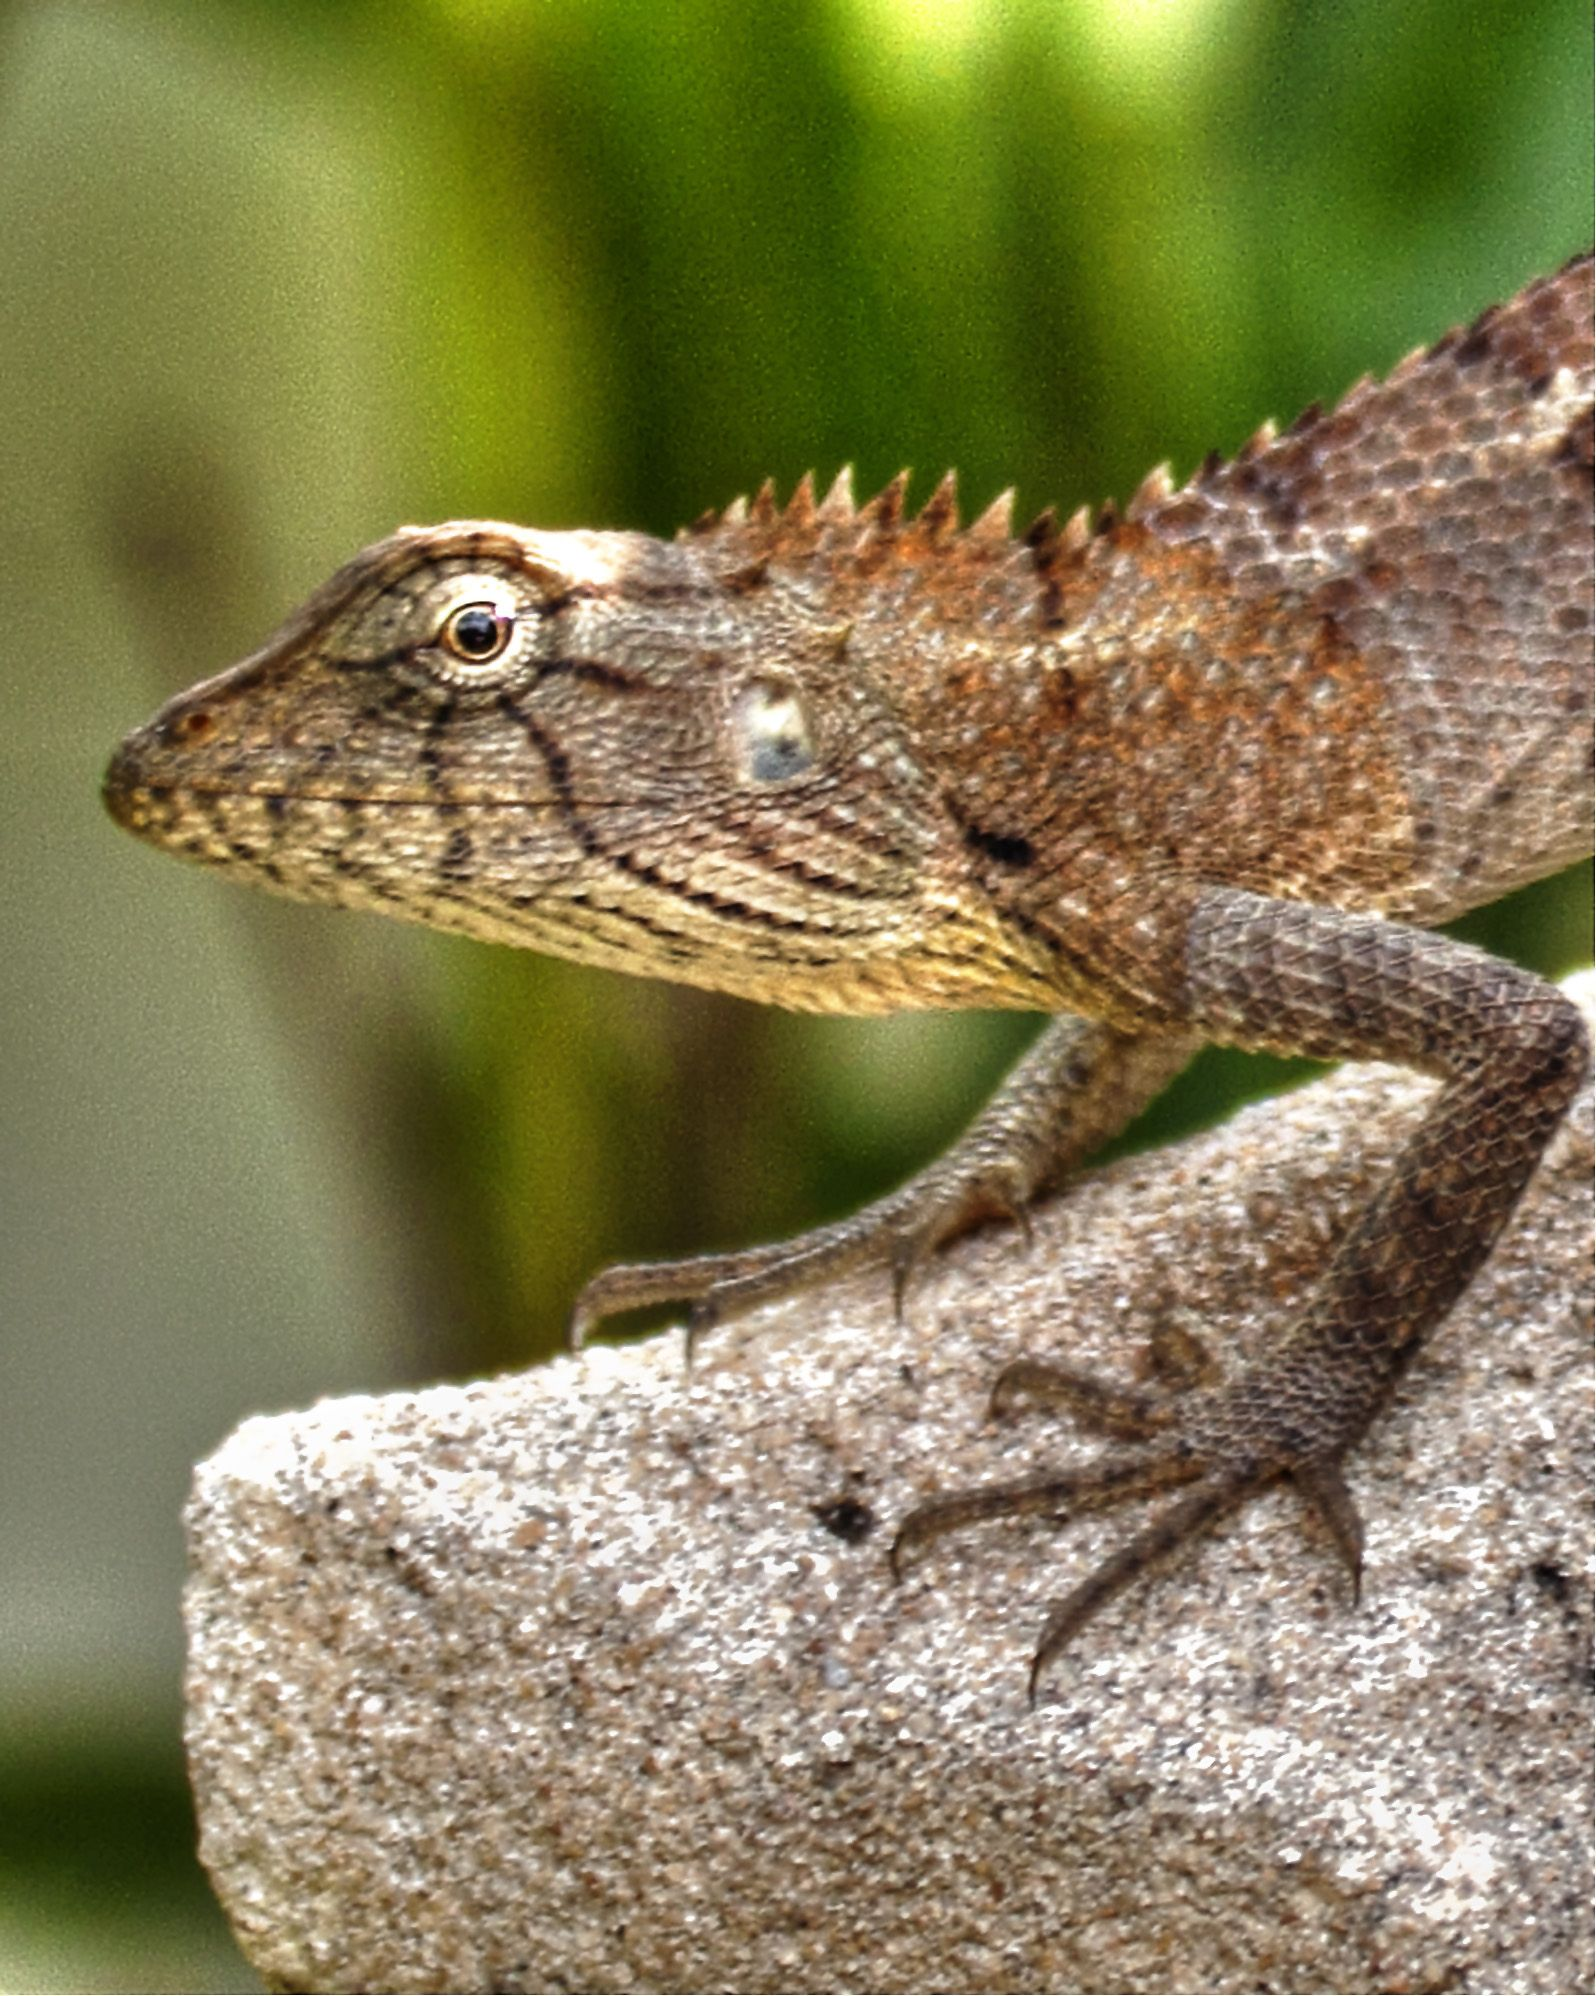 Lizard, a frequent visitor to my garden. | William Reid | Pinterest ...